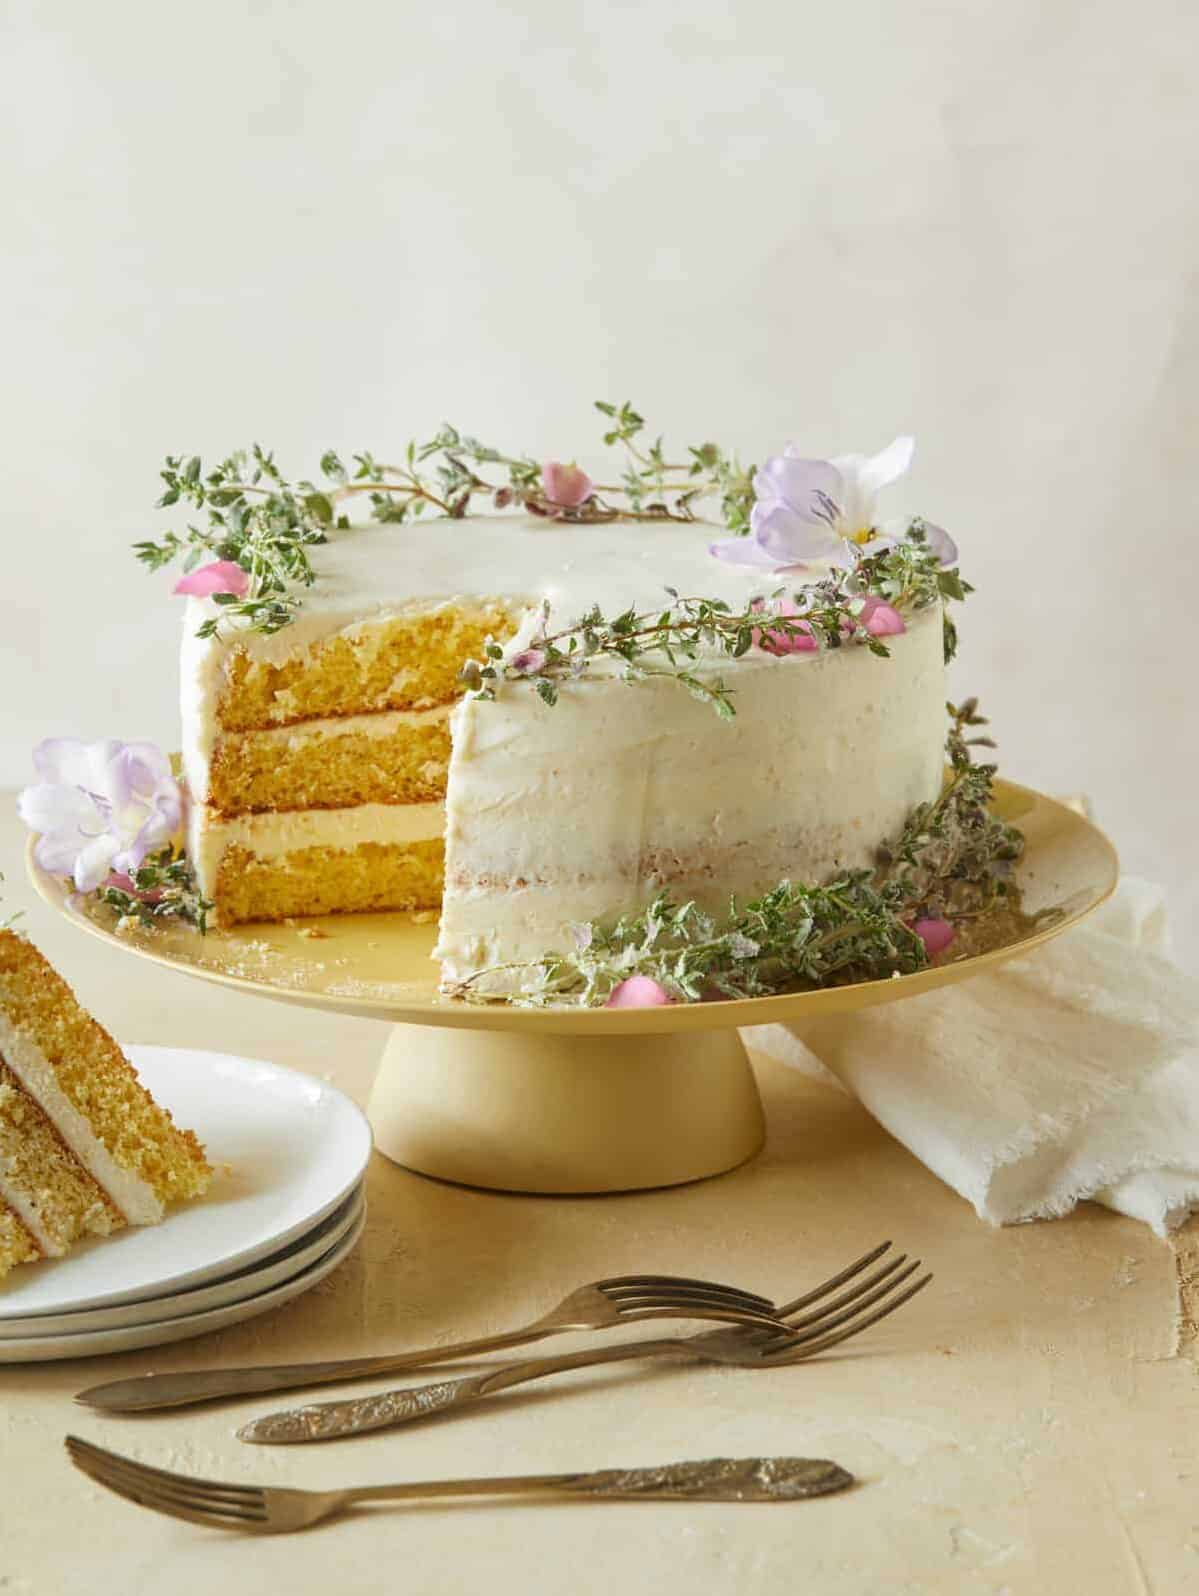 A browned butter cake with vanilla honey frosting with a slice on a plate and forks.